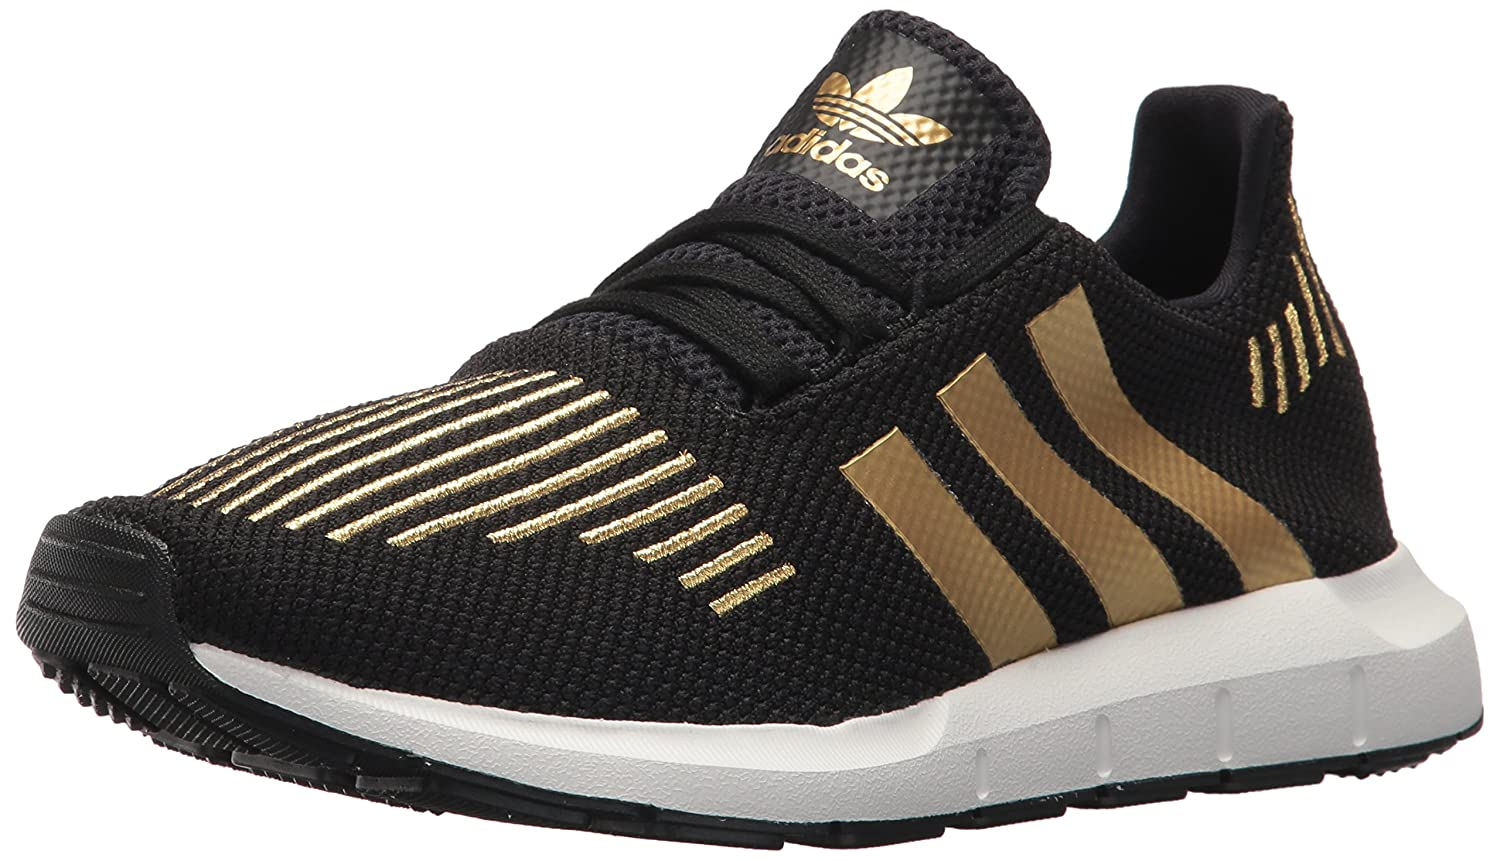 adidas Originals Women's Swift Run W B06XP5Z2VF 7 B(M) US|Black/Gold Metallic/White